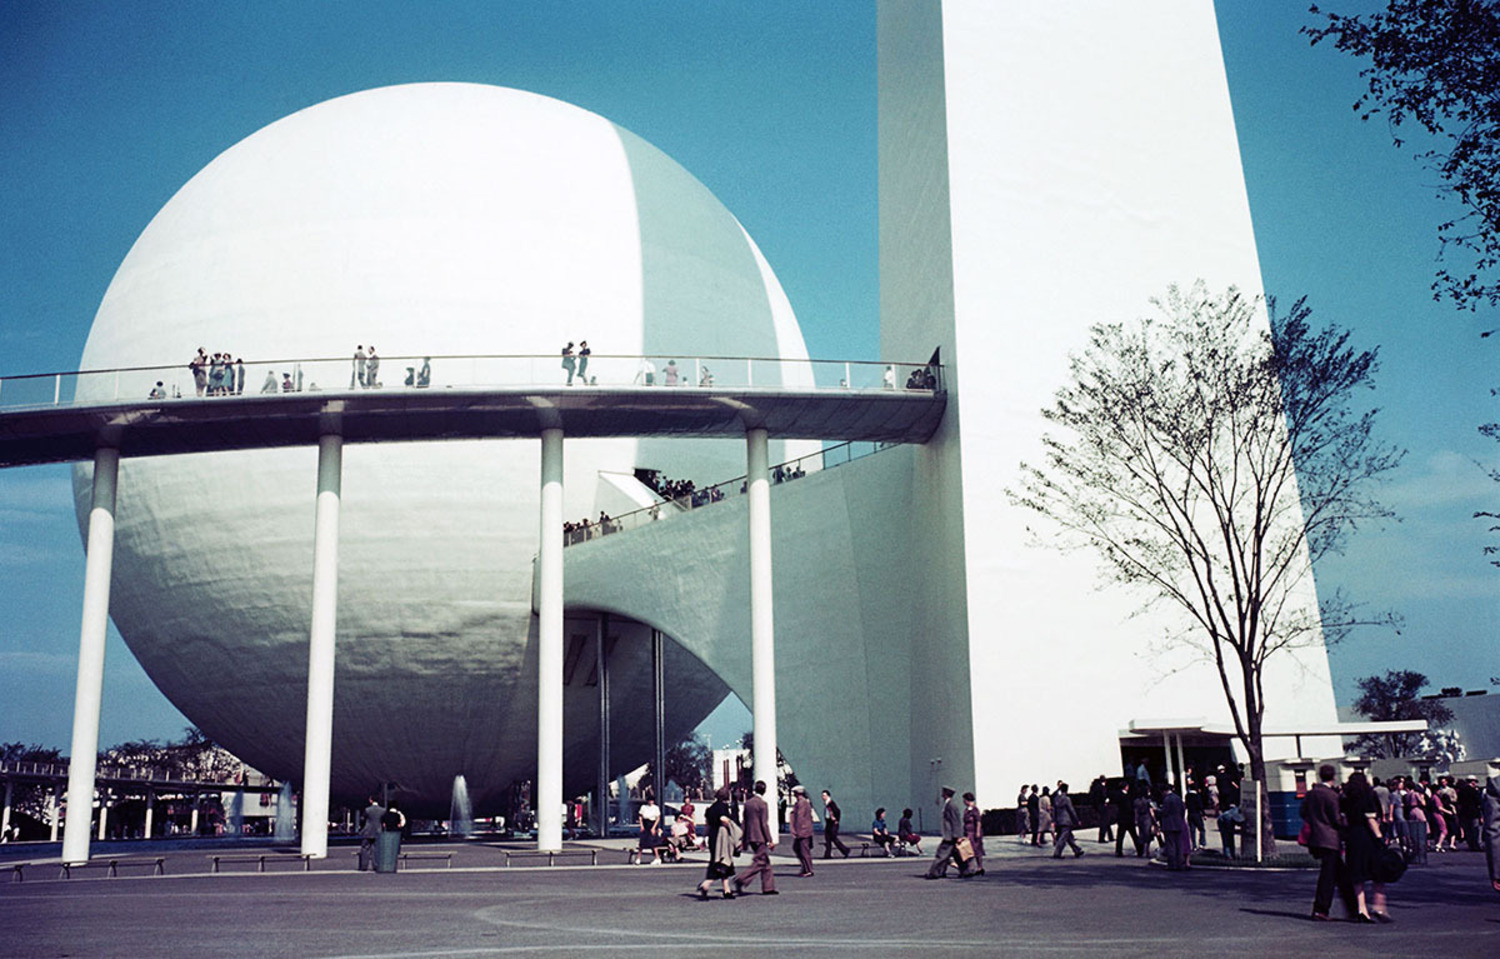 People visit the Trylon and Perisphere at the 1939 New York World's Fair. Inside the Perisphere was a diorama of a futuristic utopian city named Democracity. After viewing, visitors would leave by descending a long spiral walkway named the Helicline.